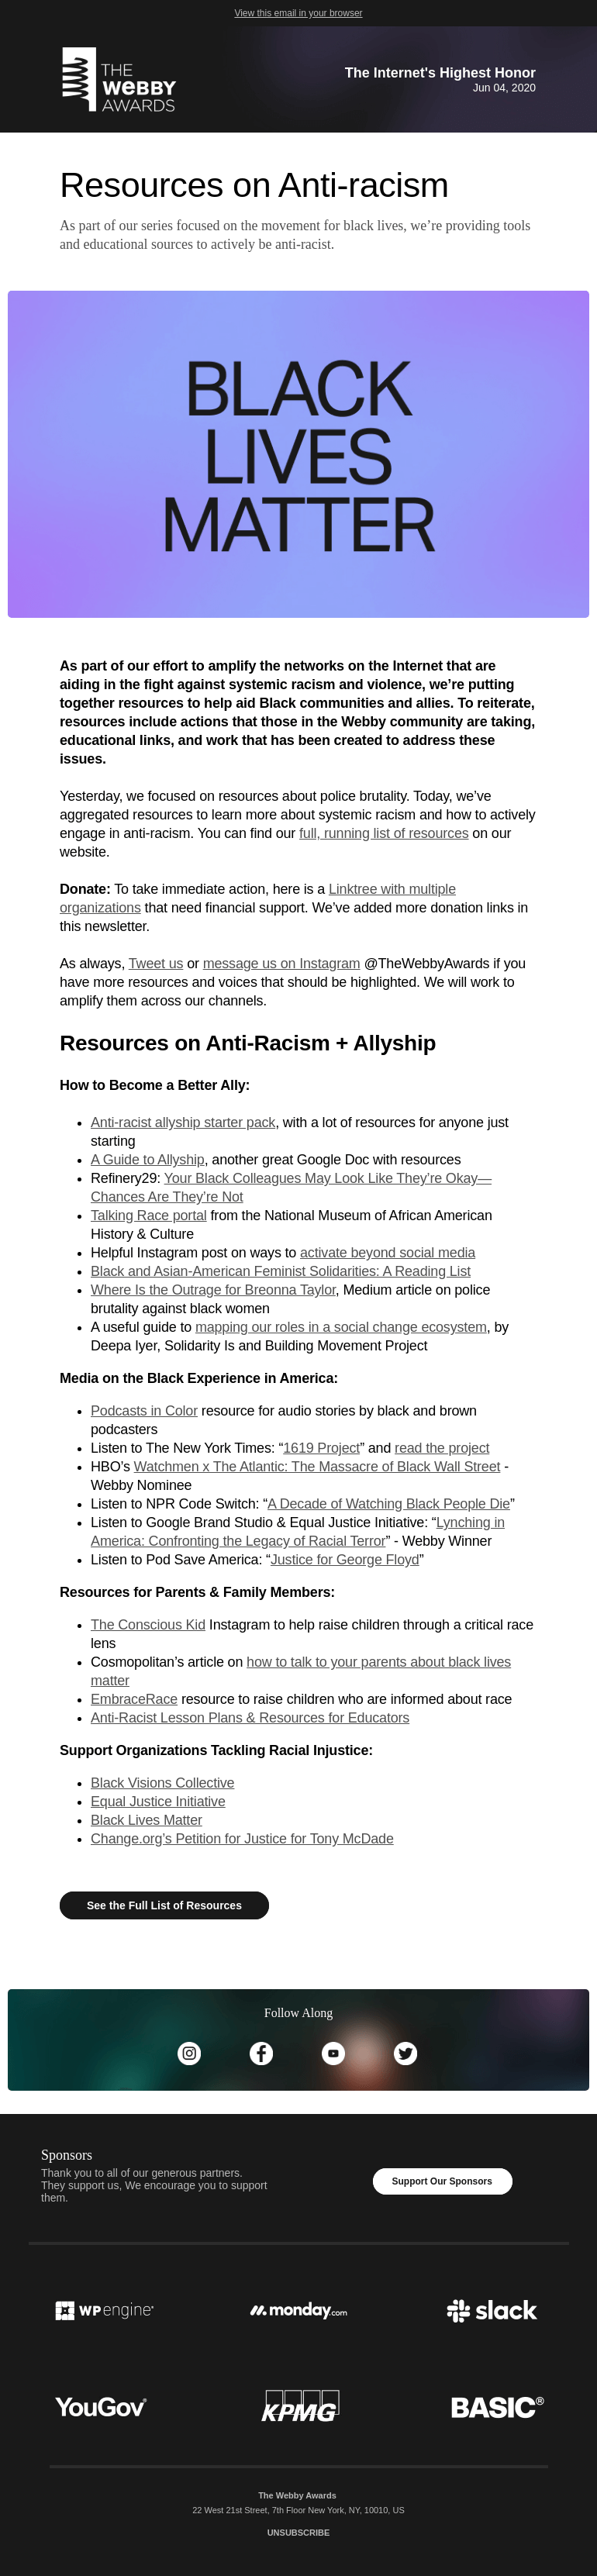 A collection of anti-racism resources, part two of our series